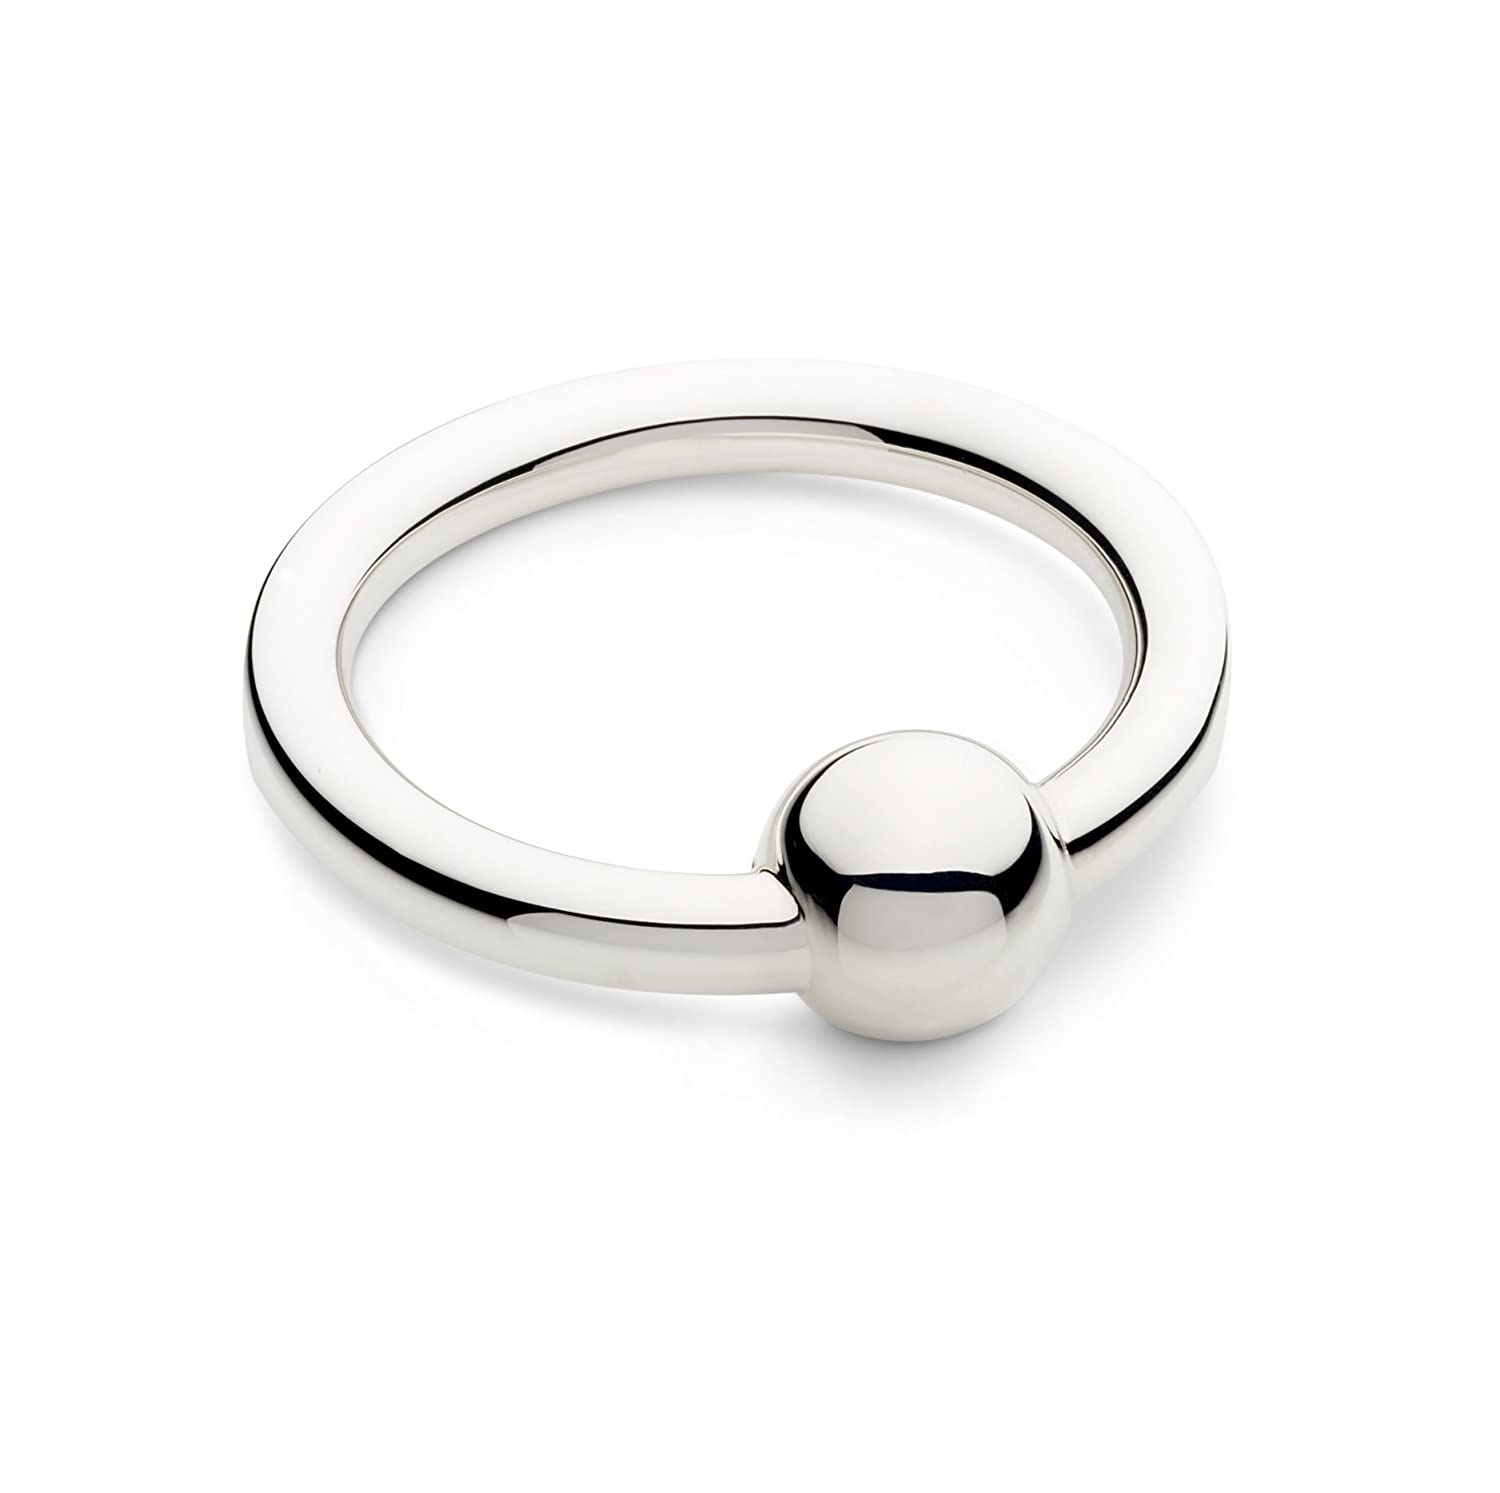 Cunill 5-Ounce Single Ring/Ball Baby Rattle, 2-Inch, Sterling Silver Cunill Silver 204000